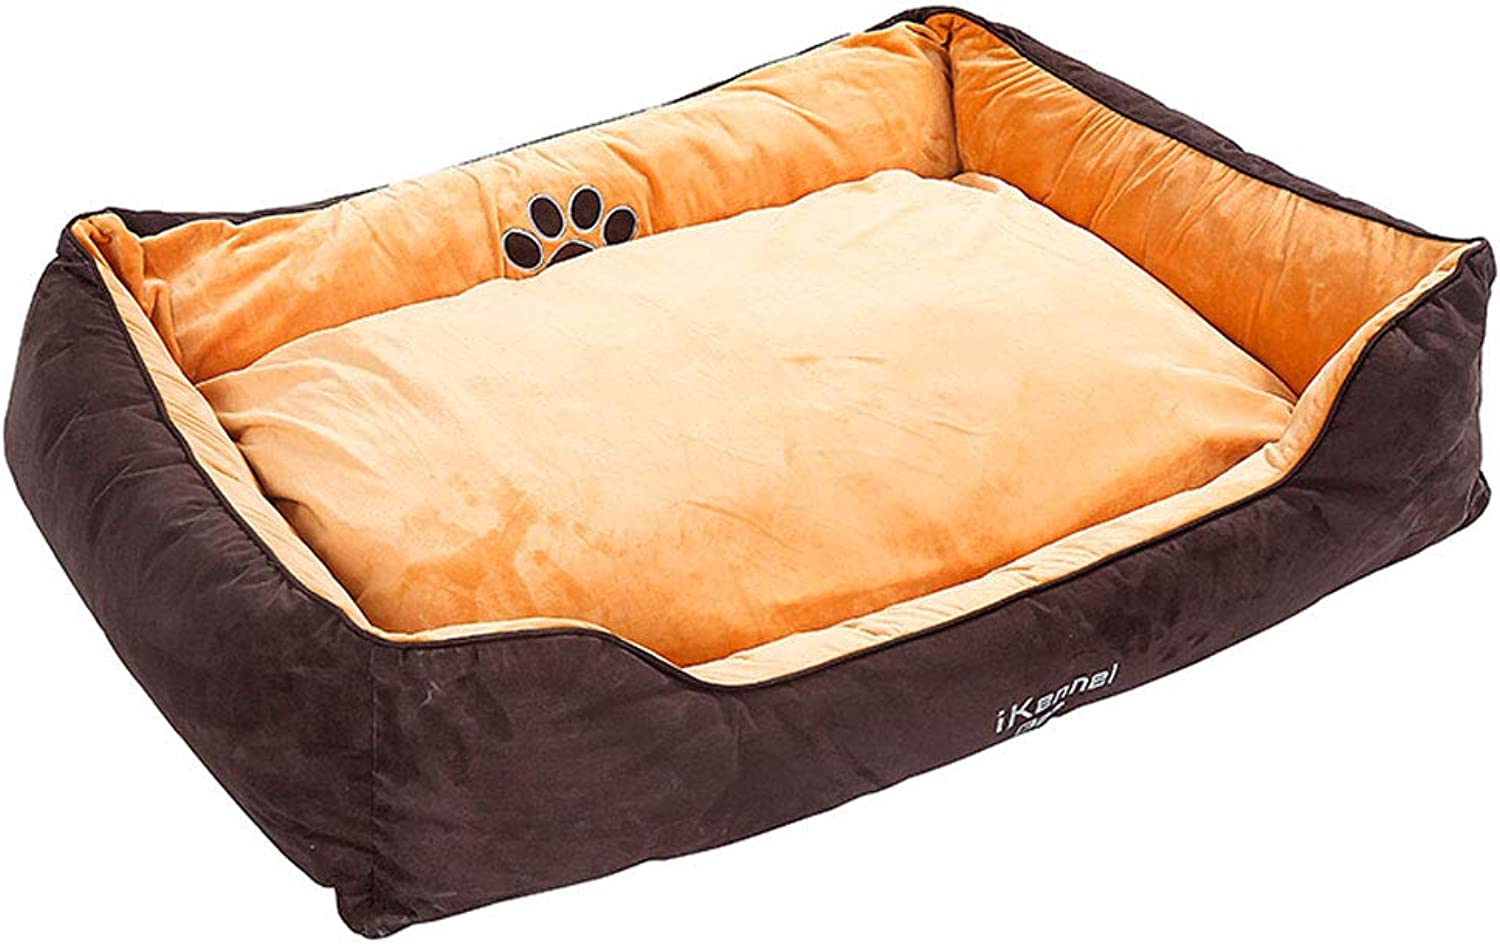 PLDDY Dog Bed,Dog Nest,pet Nest,Non-Sticky Hair, Removable and Washable, Double-Sided Pad, Warm in Winter, Four Seasons Universal, Labrador, golden Retriever, Large Small Dogs, Kennel (Size   S)